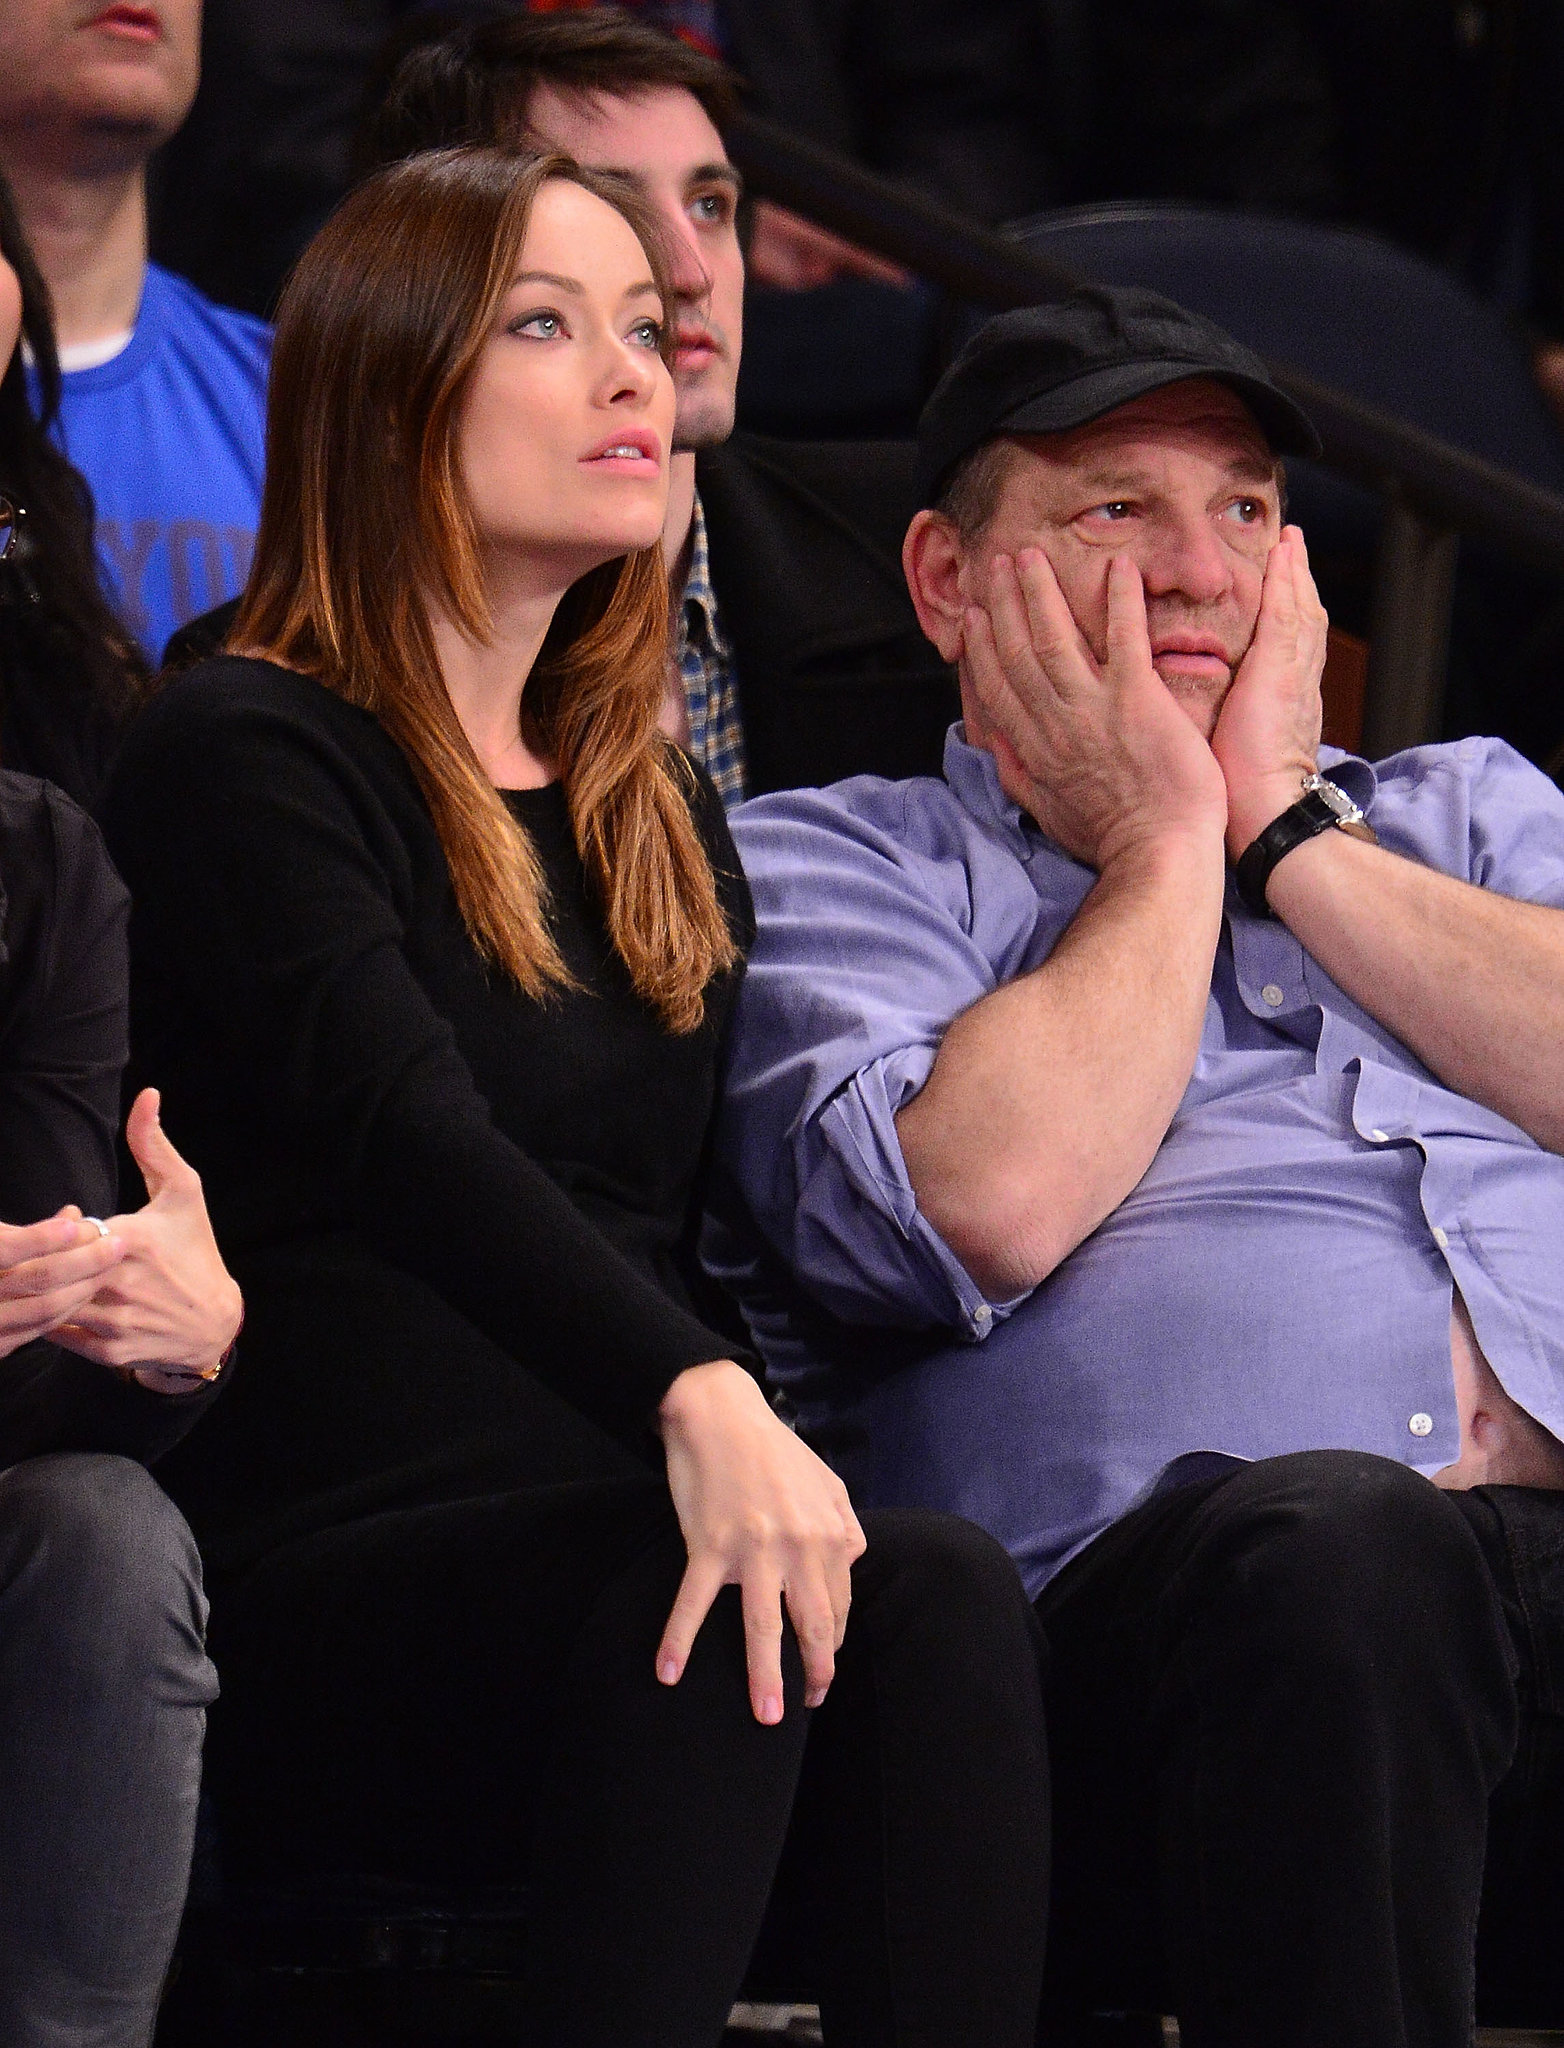 Harvey Weinstein and Olivia Wilde didn't look happy during a New York Knicks game in NYC on Sunday.